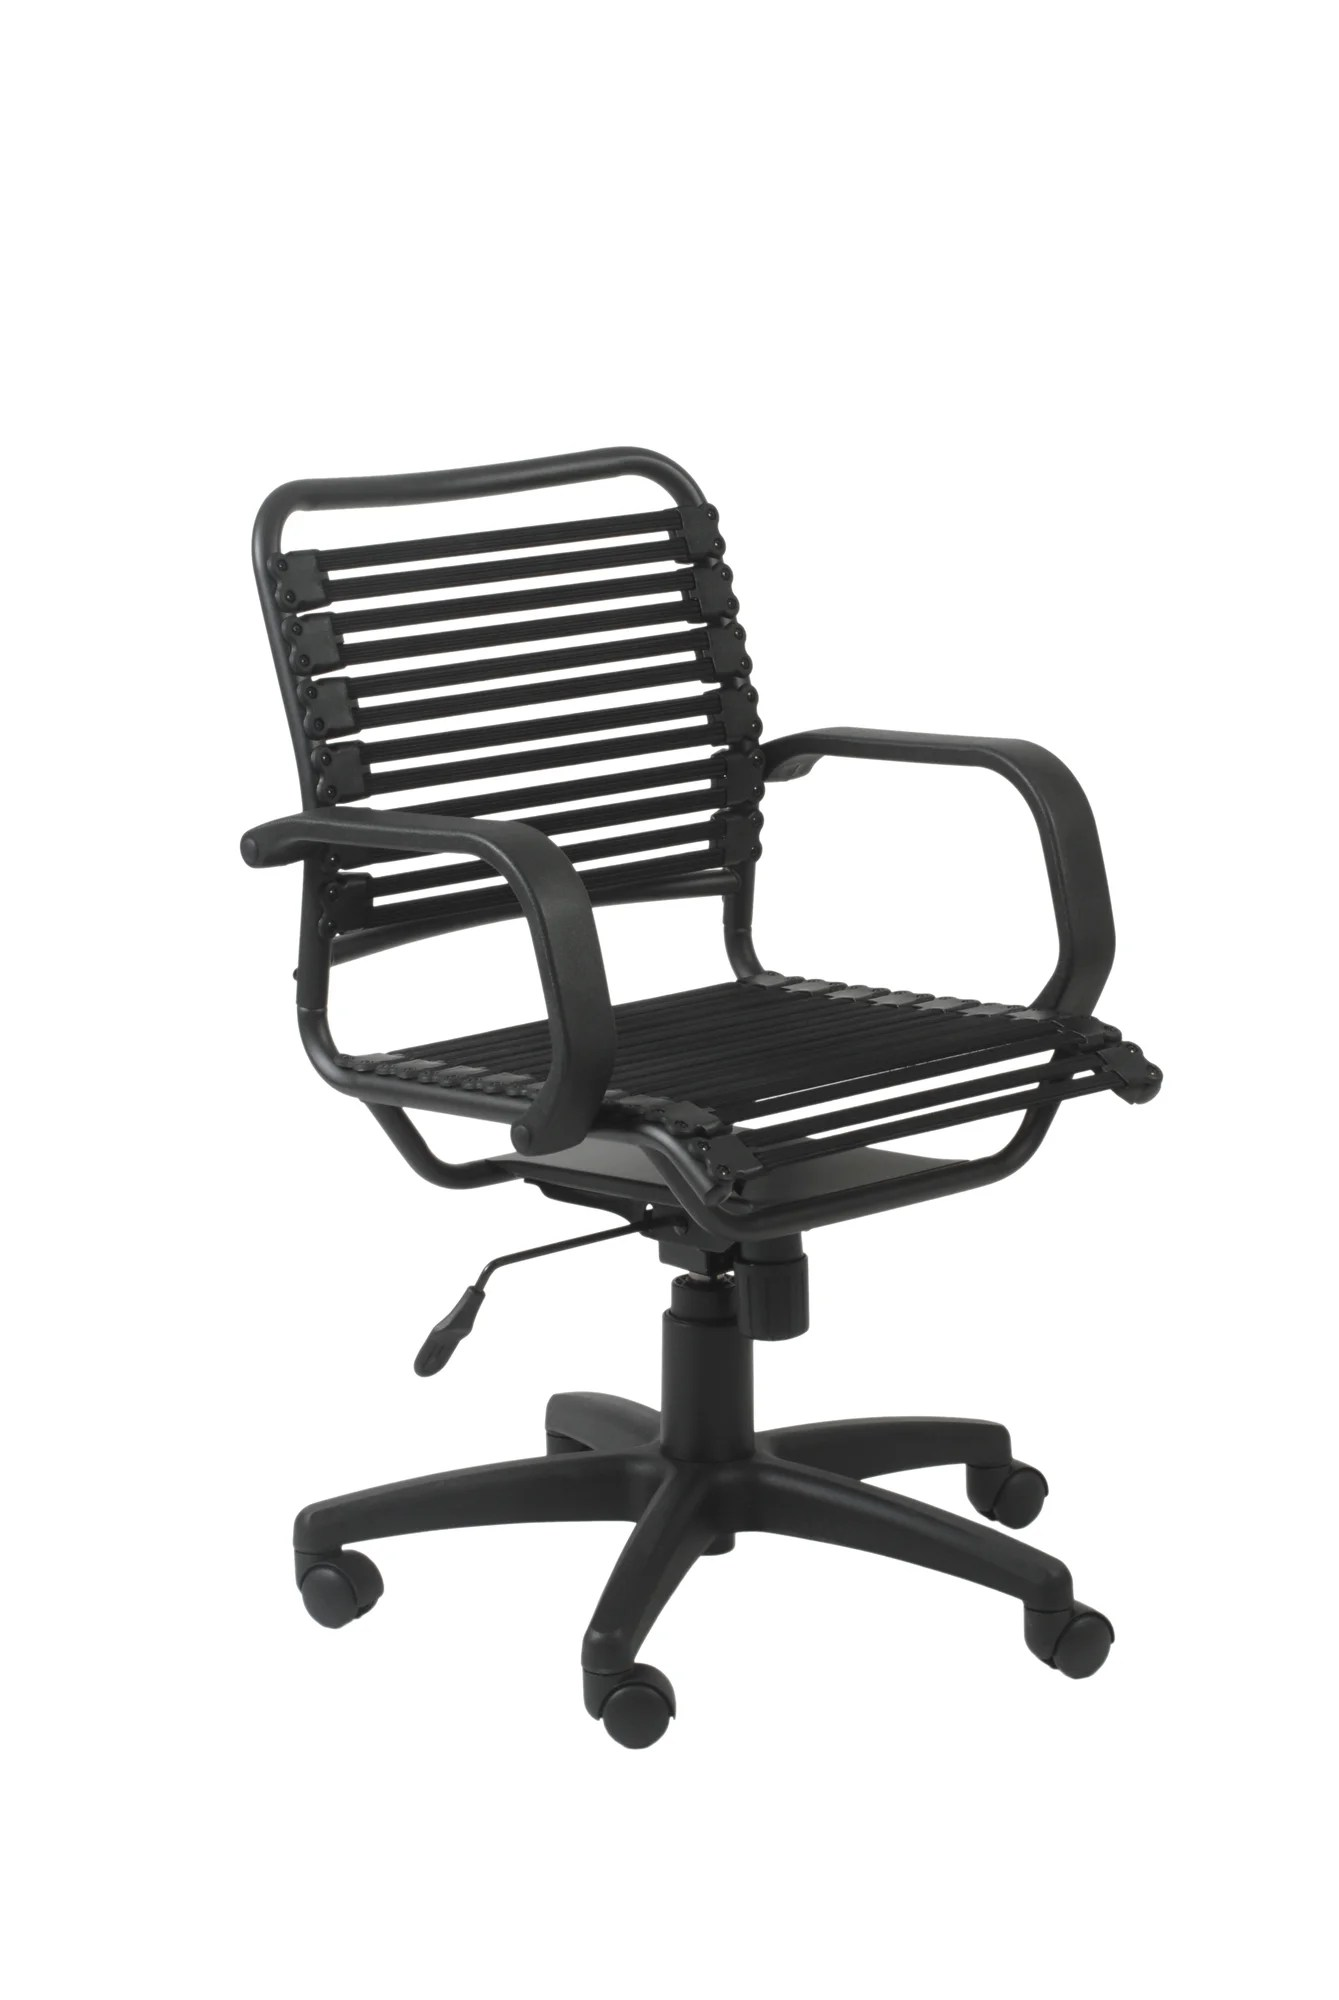 bungee cord office chair aluminum webbing chairs on shoppinder